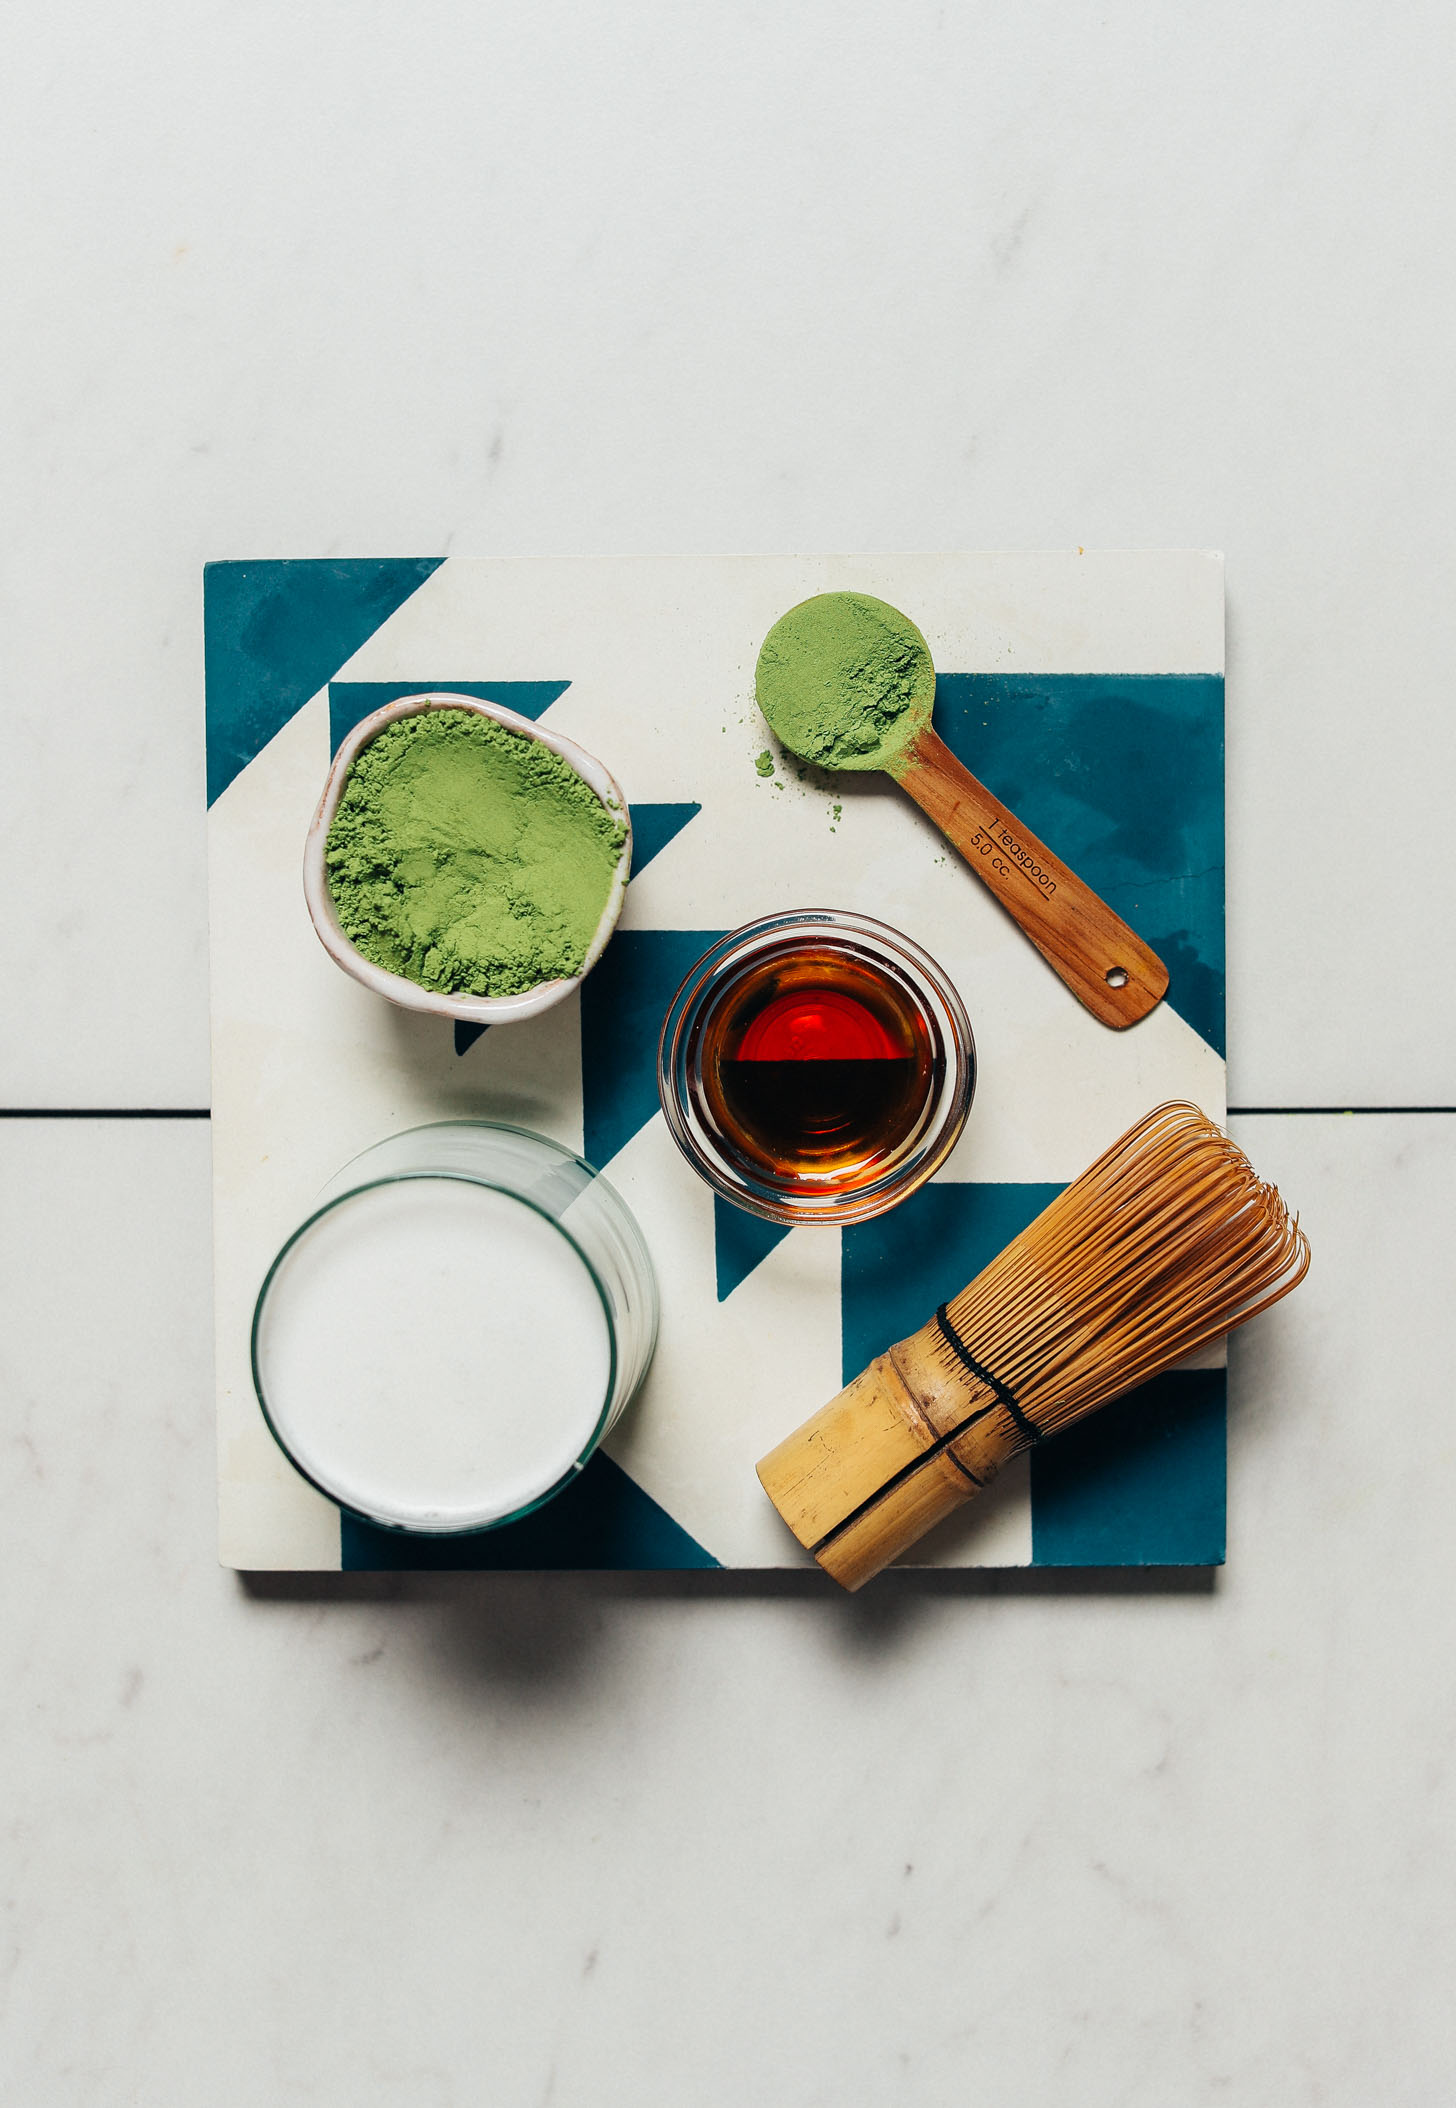 Tile with ingredients for making our creamy plant-based Moringa Latte recipe